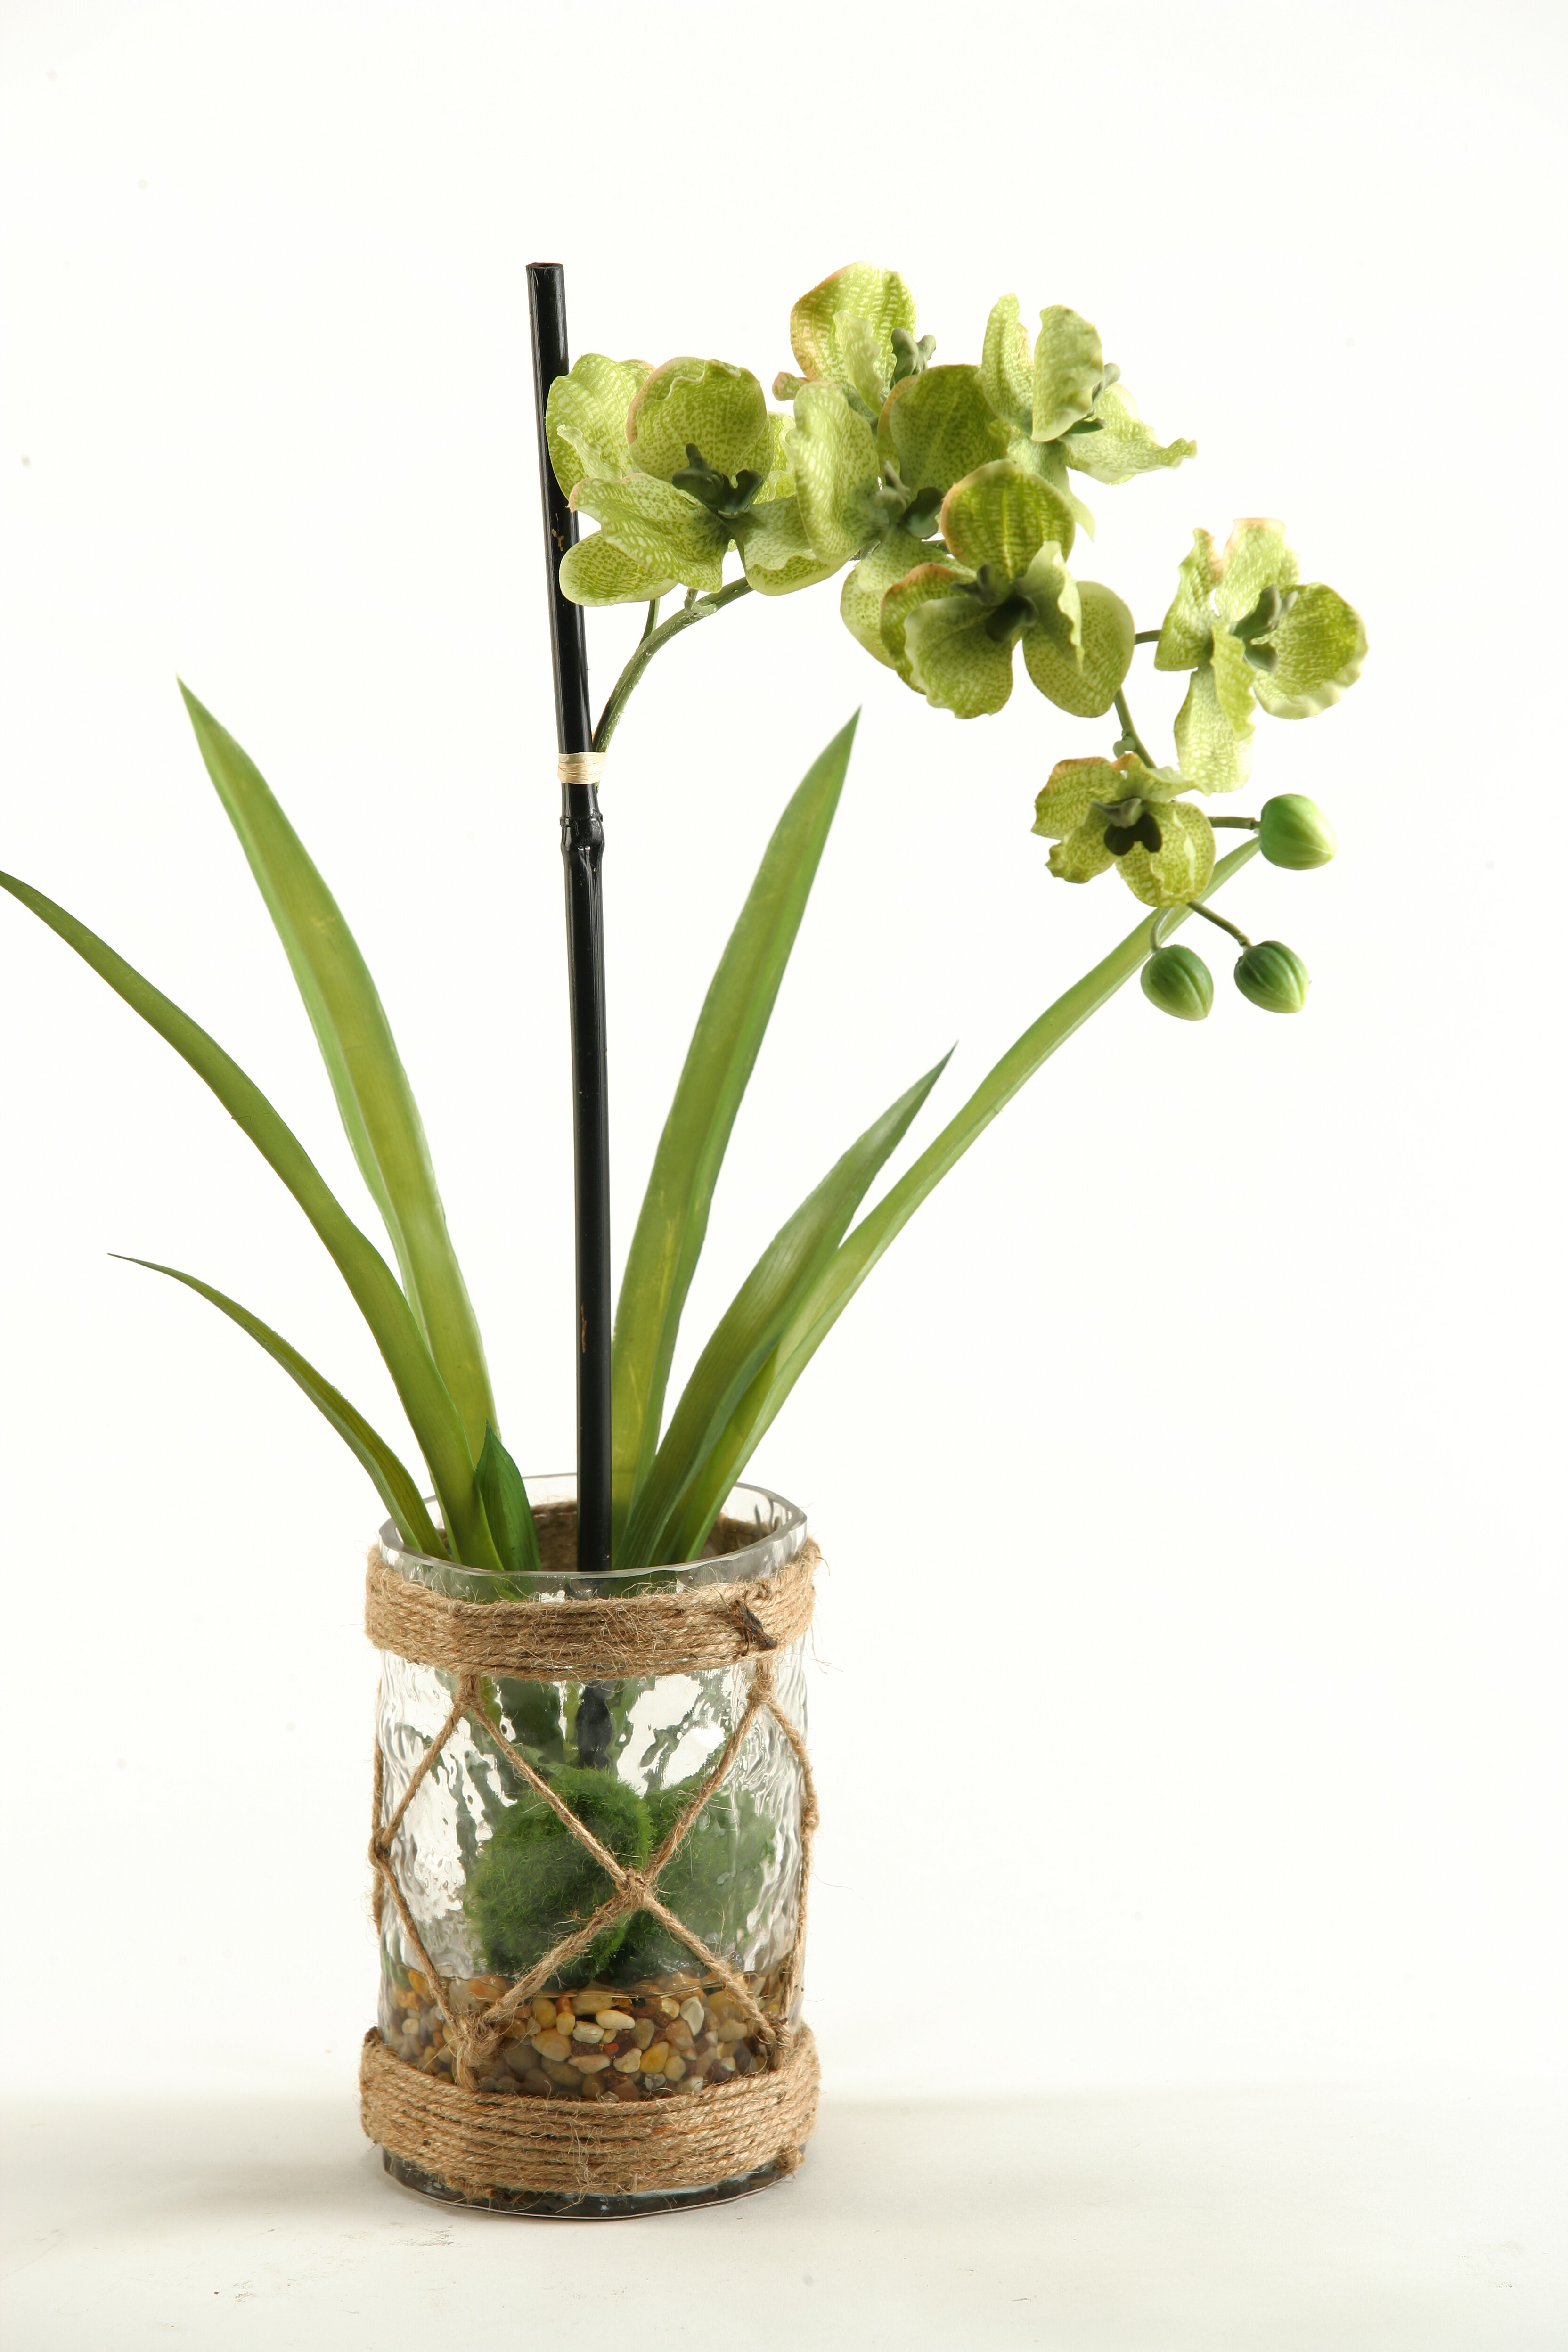 Vanda orchids with foliage and seagrass netting in glass vase vanda orchids with foliage and seagrass netting in glass vase reviews birch lane reviewsmspy